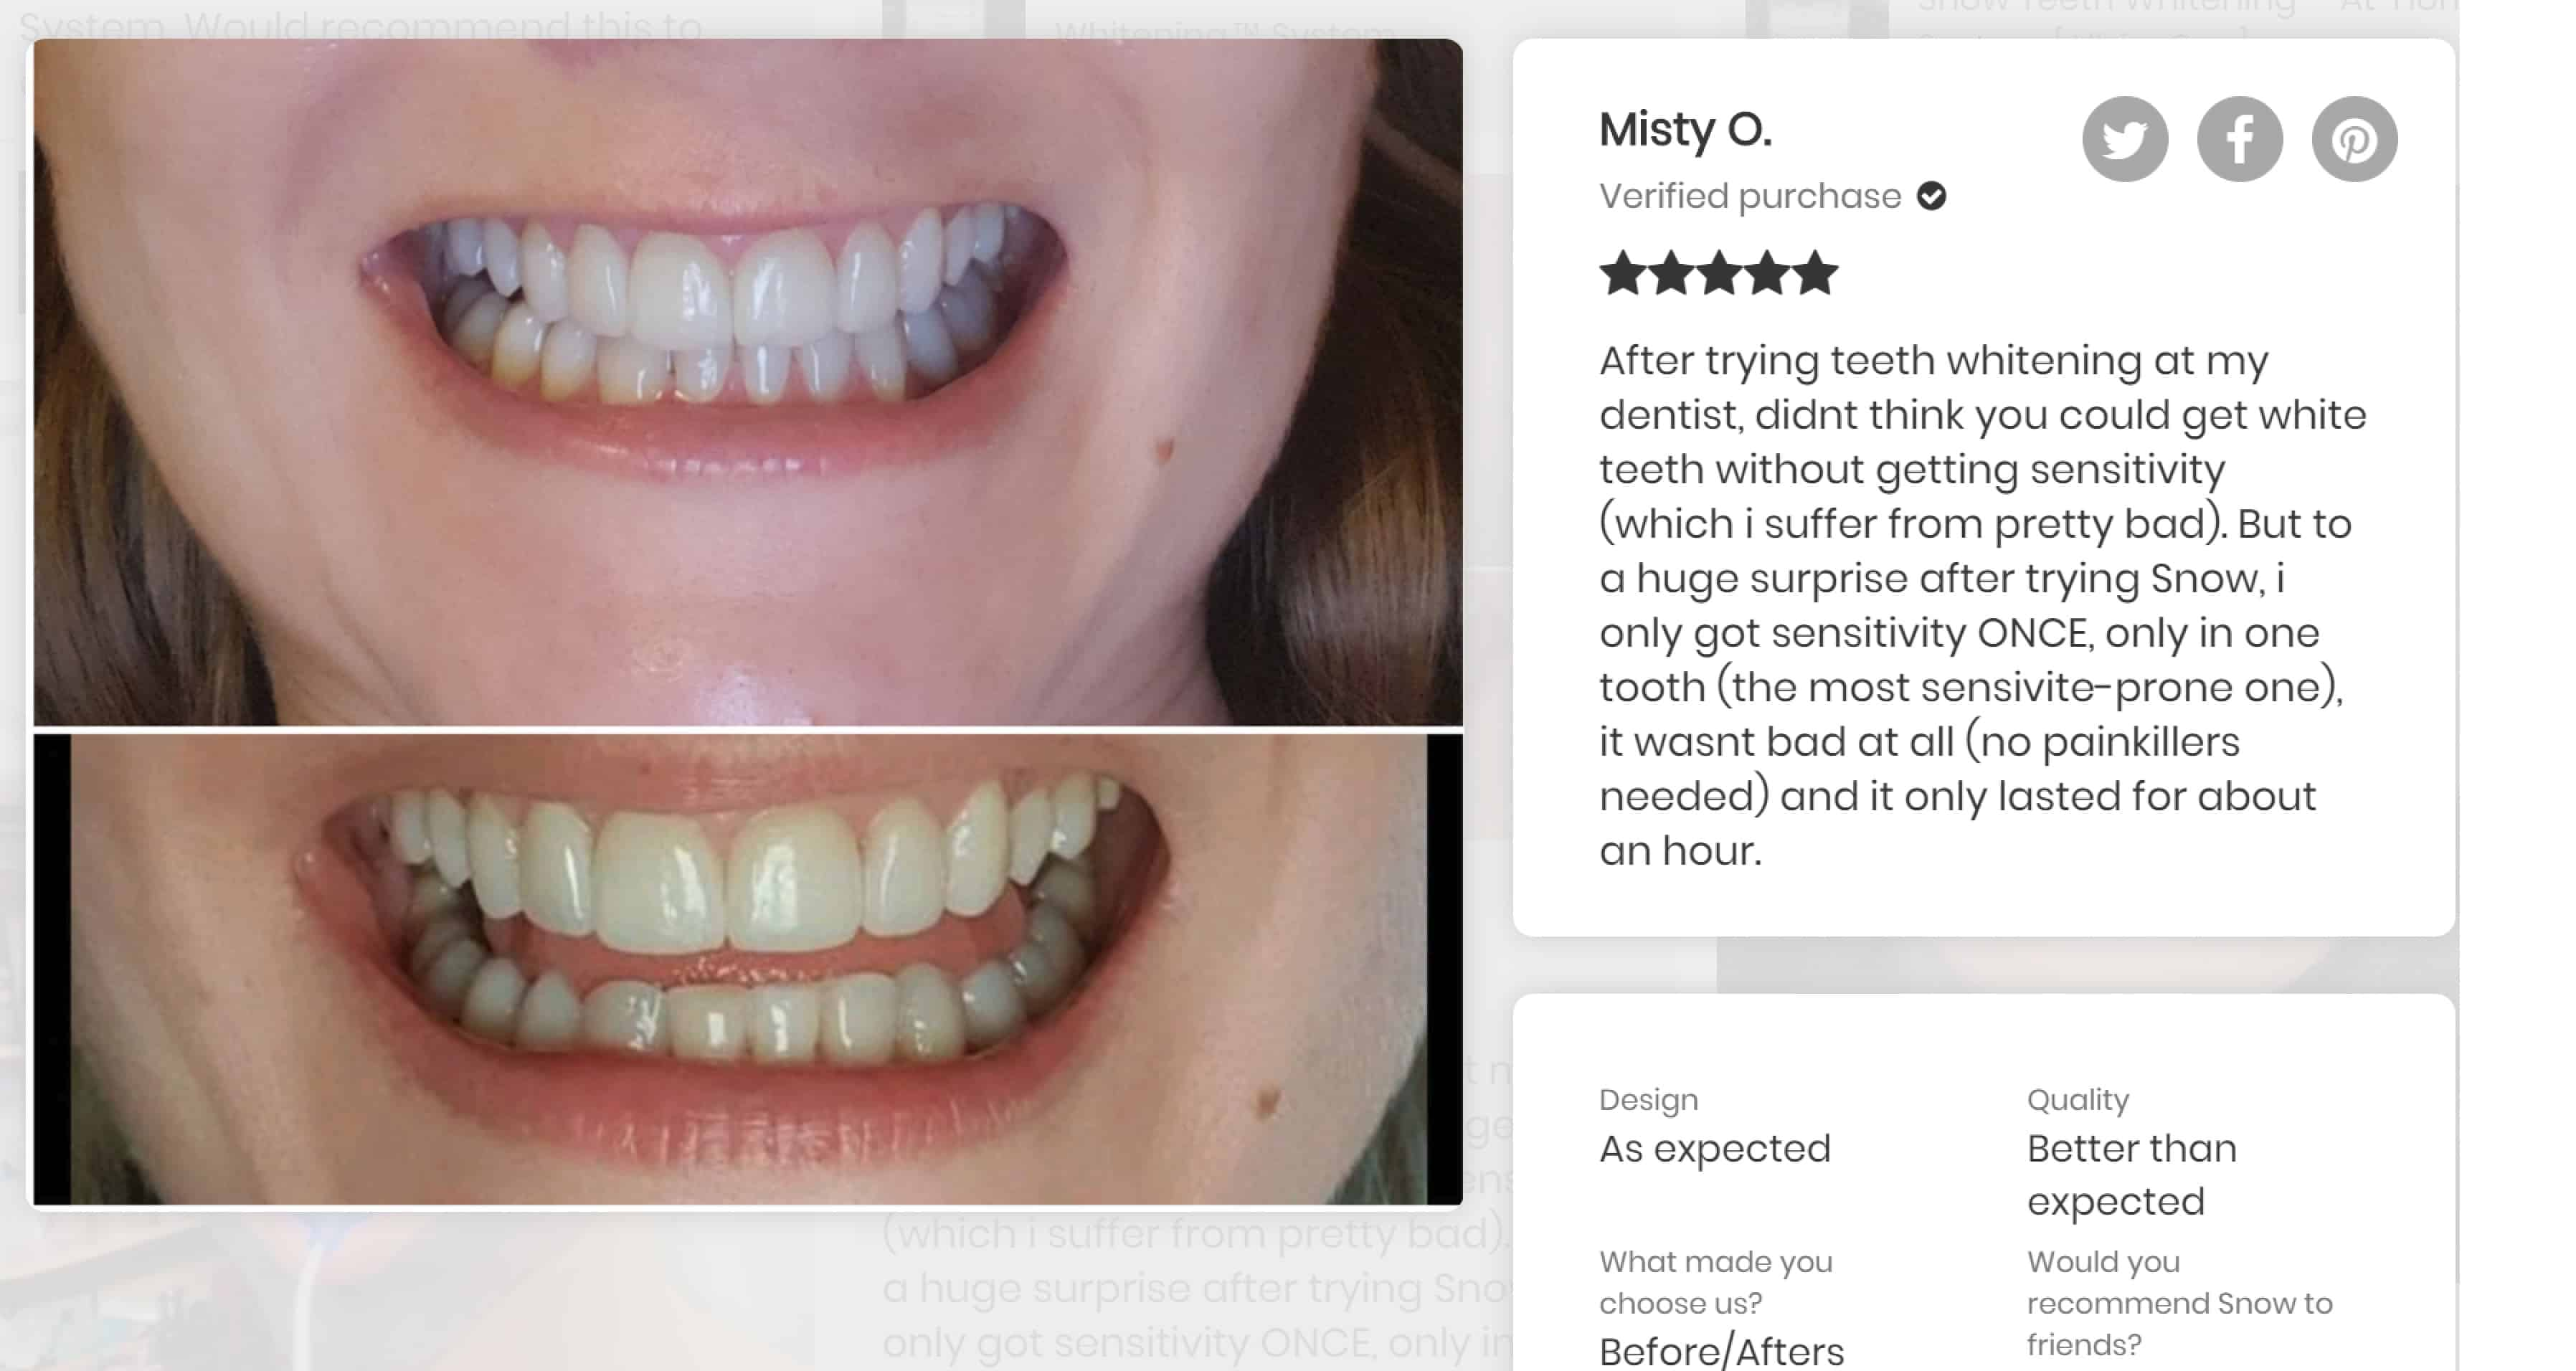 Does Snow Teeth Whitening Work On Crowns